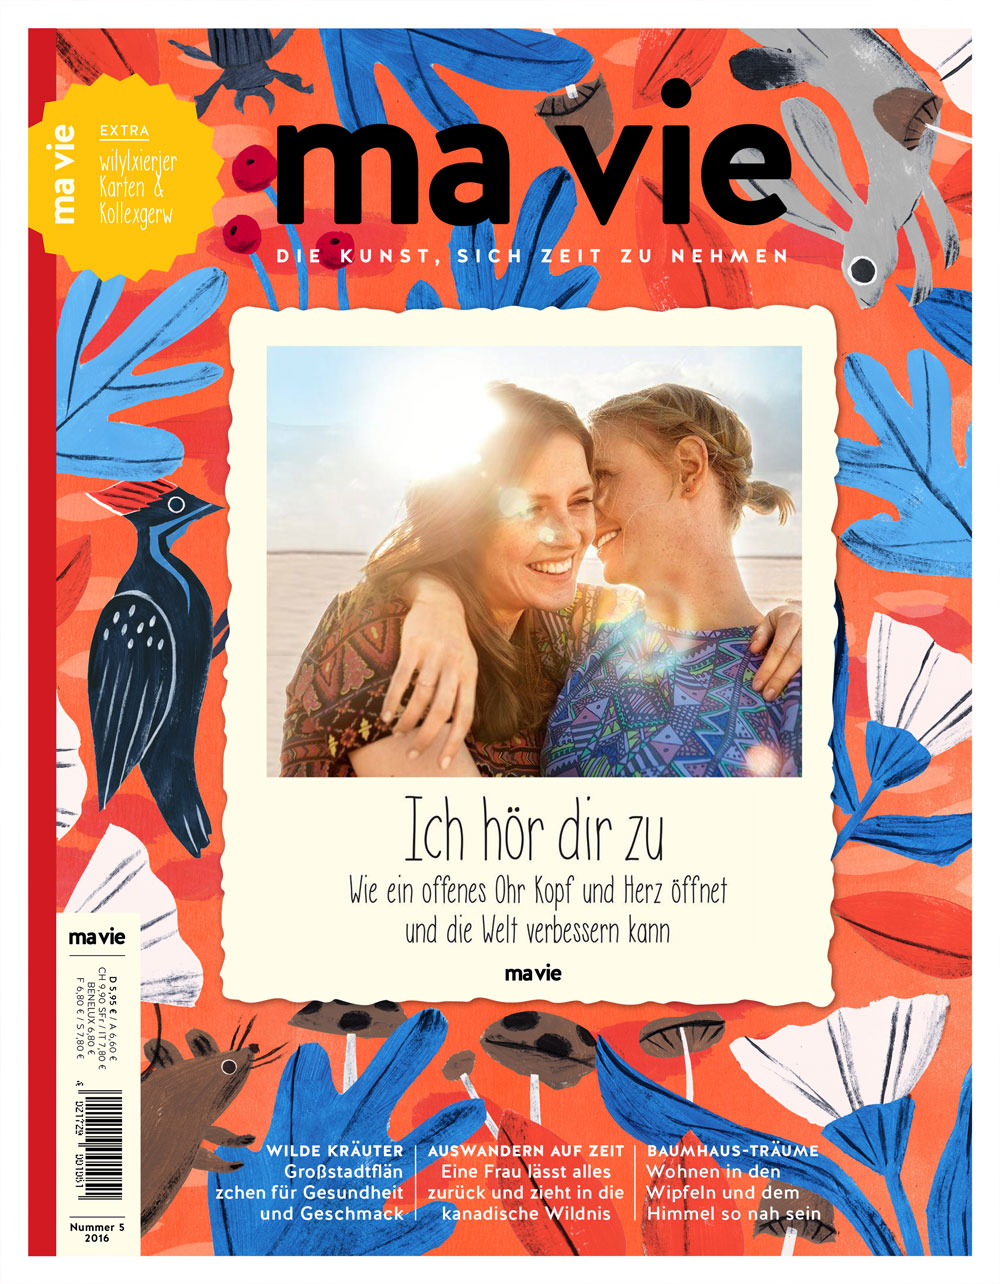 cover_mavie_penelopedullaghan.jpg